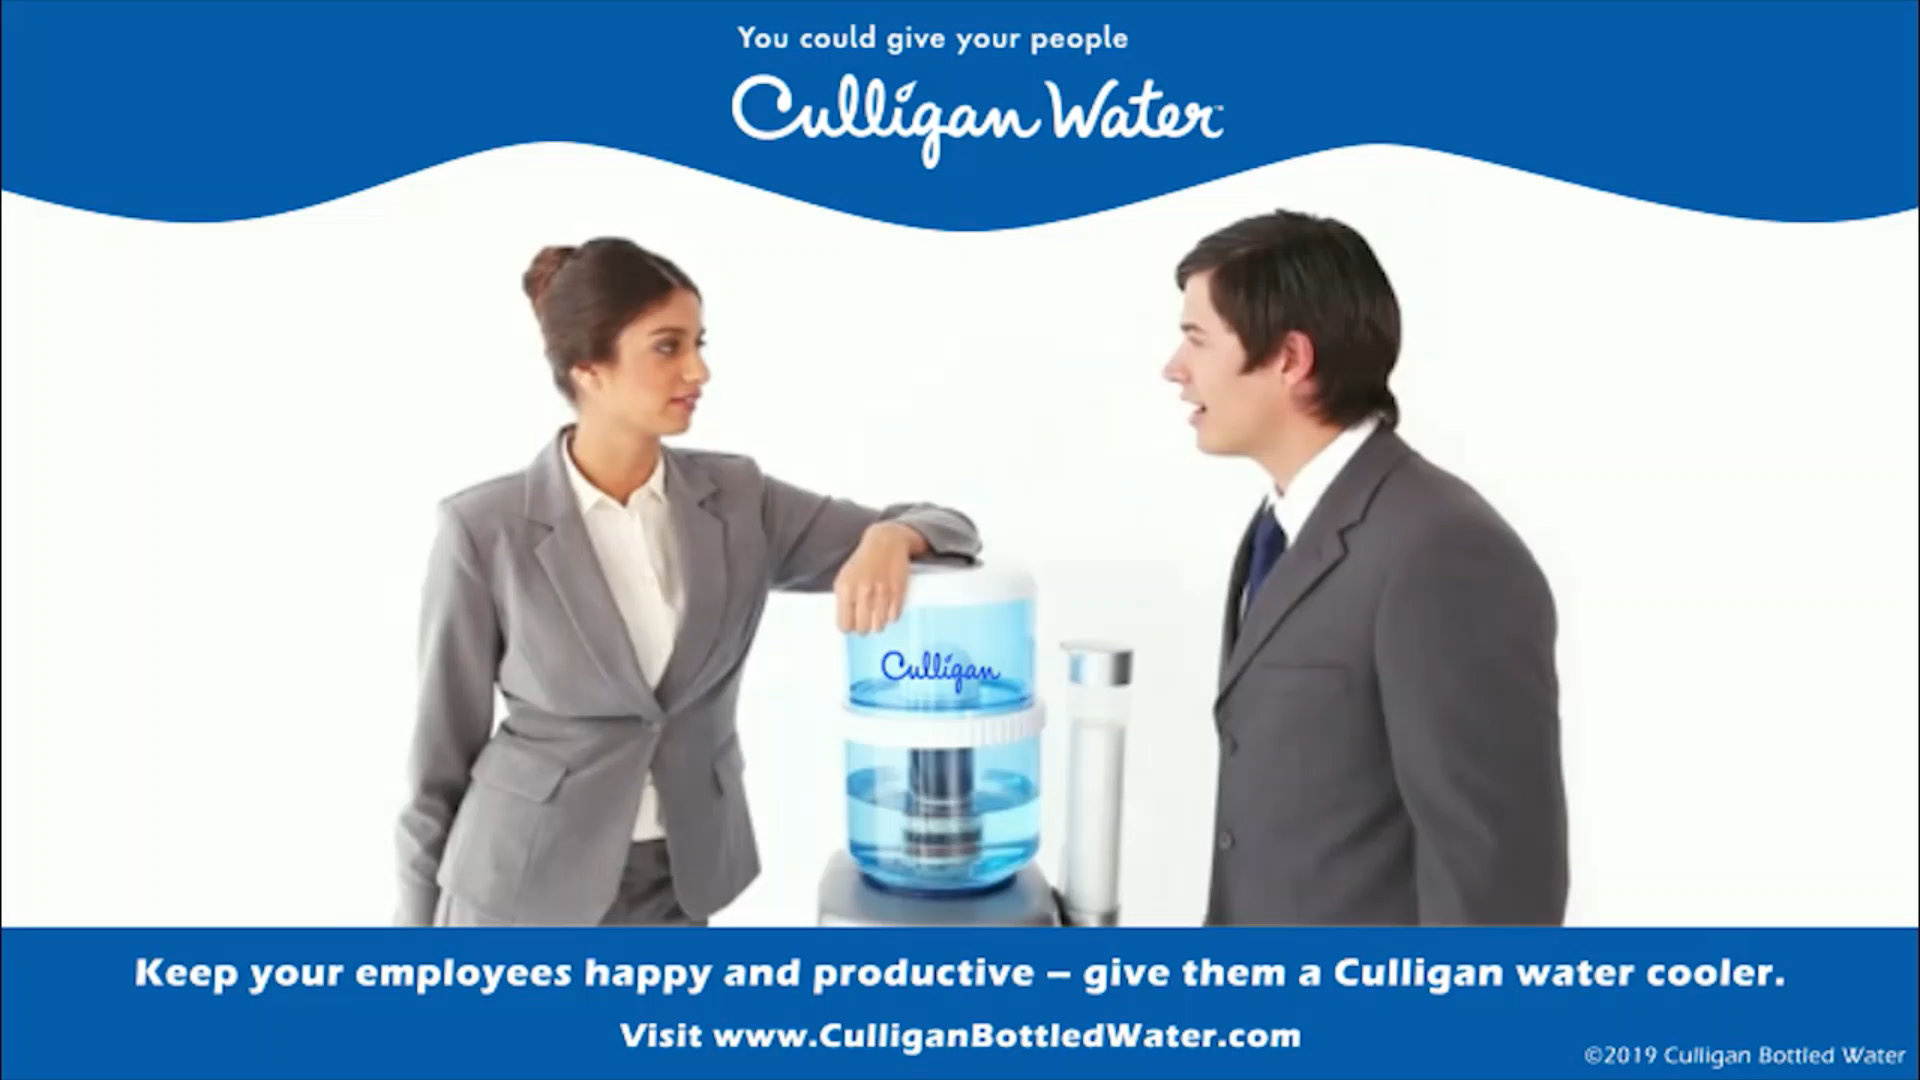 Keep Your Employees Happy And Productive Give Them A Culligan Water Cooler To Learn More About Culligan Water C Video Water Coolers Office Water Cooler Culligan